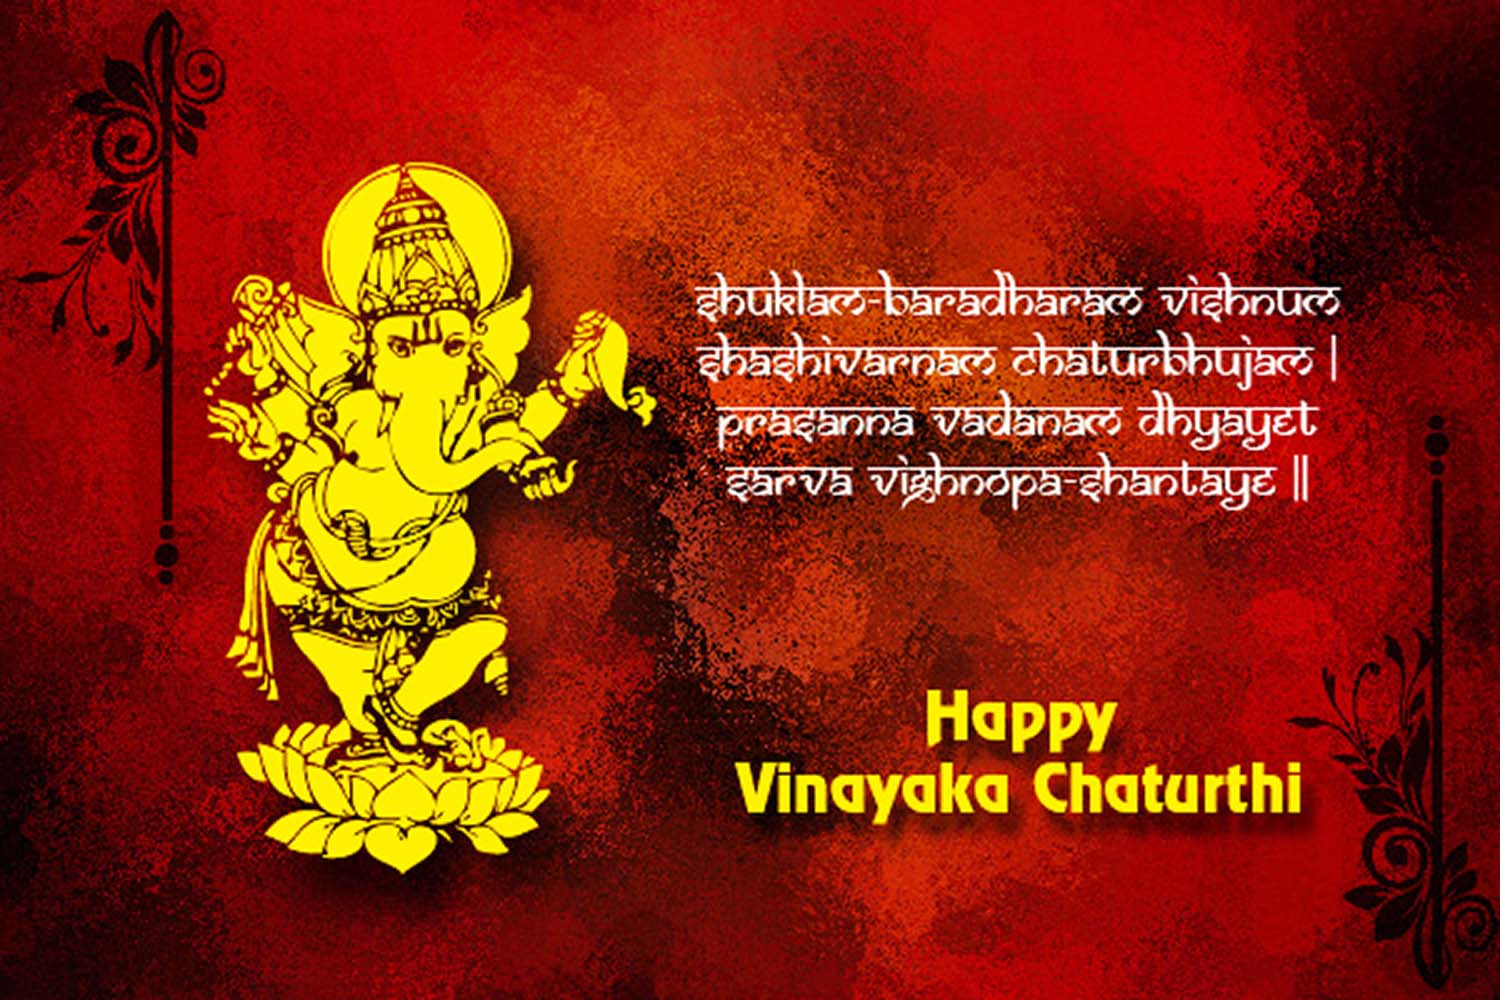 Happy Vinayaka chaturthi with mantra!